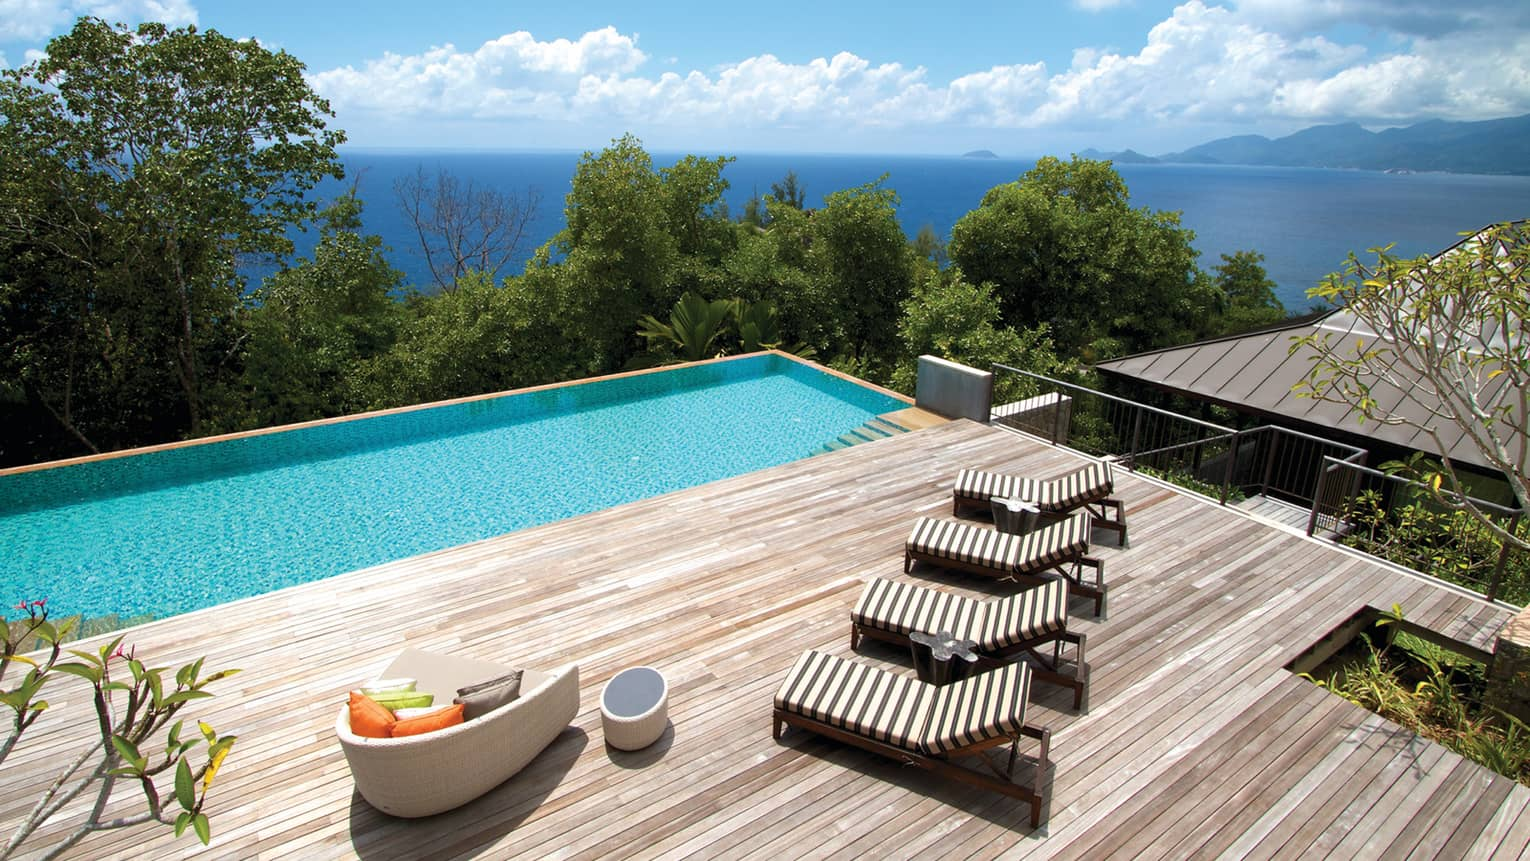 Looking over large deck with wood lounge chairs, sofa, plunge pool